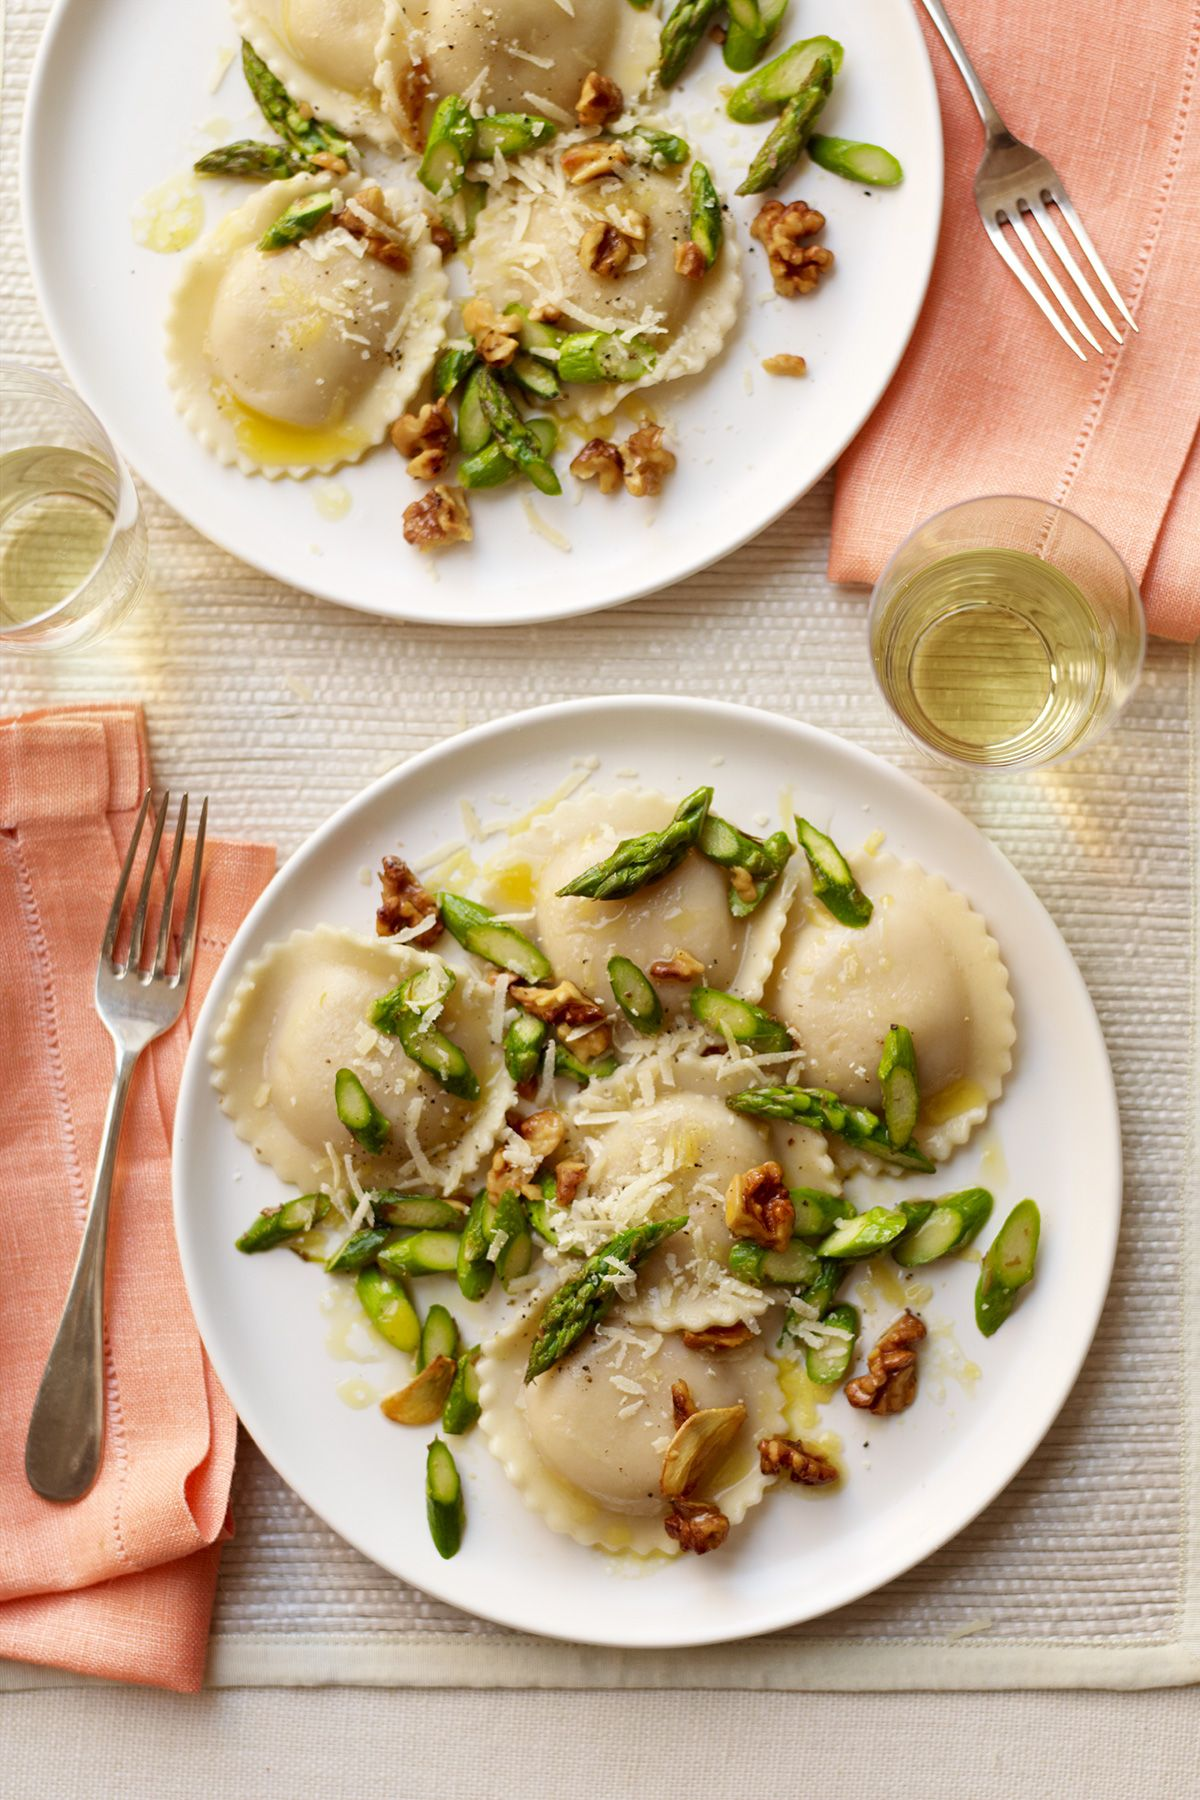 ravioli with sautéed asparagus and walnuts